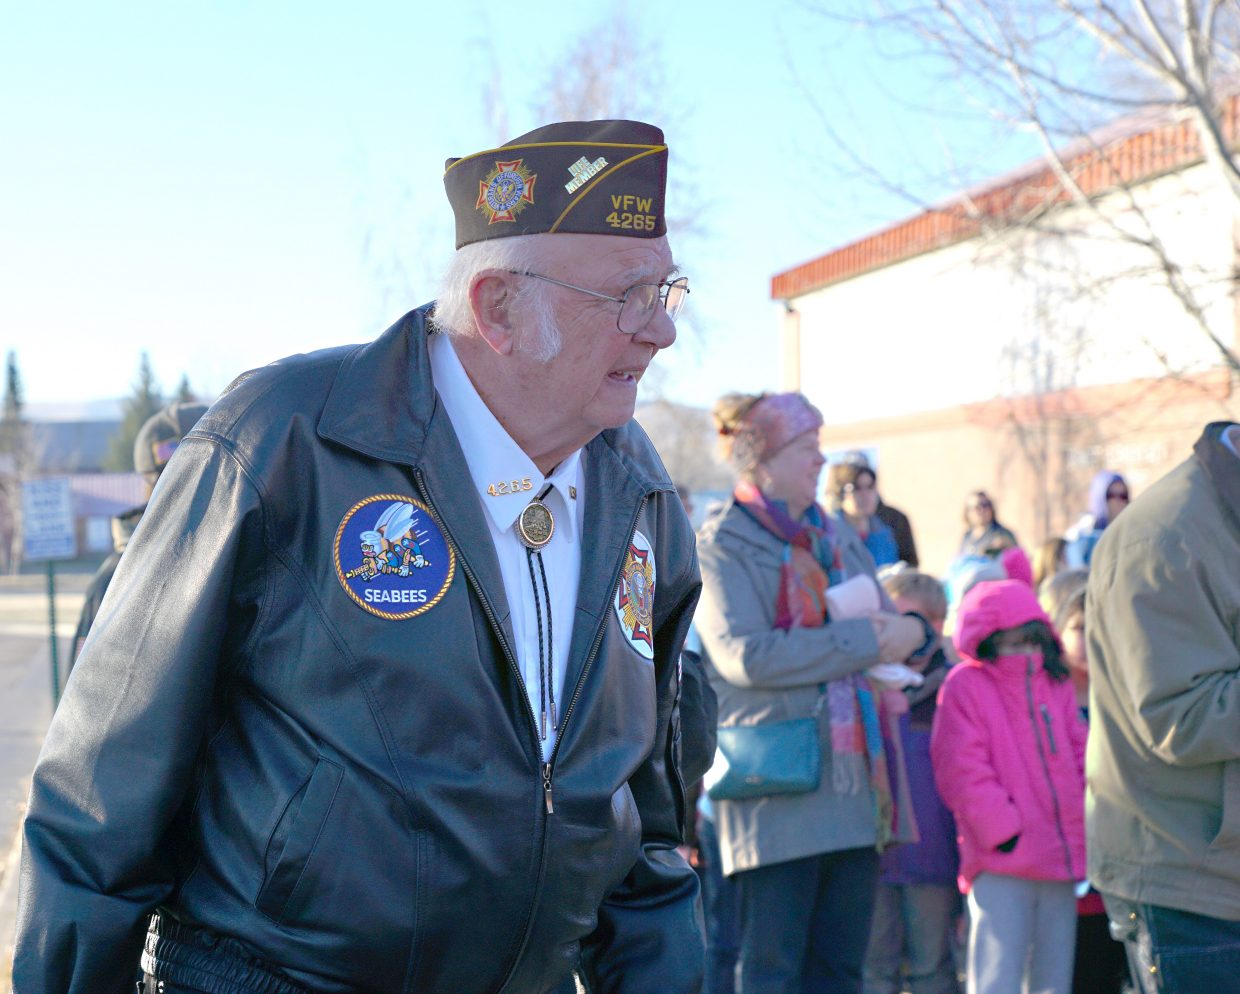 Leon Meats, part of the VFW Color Guard, escorts the flag as part of a flag raising ceremony at Sunset Elementary School on Monday.